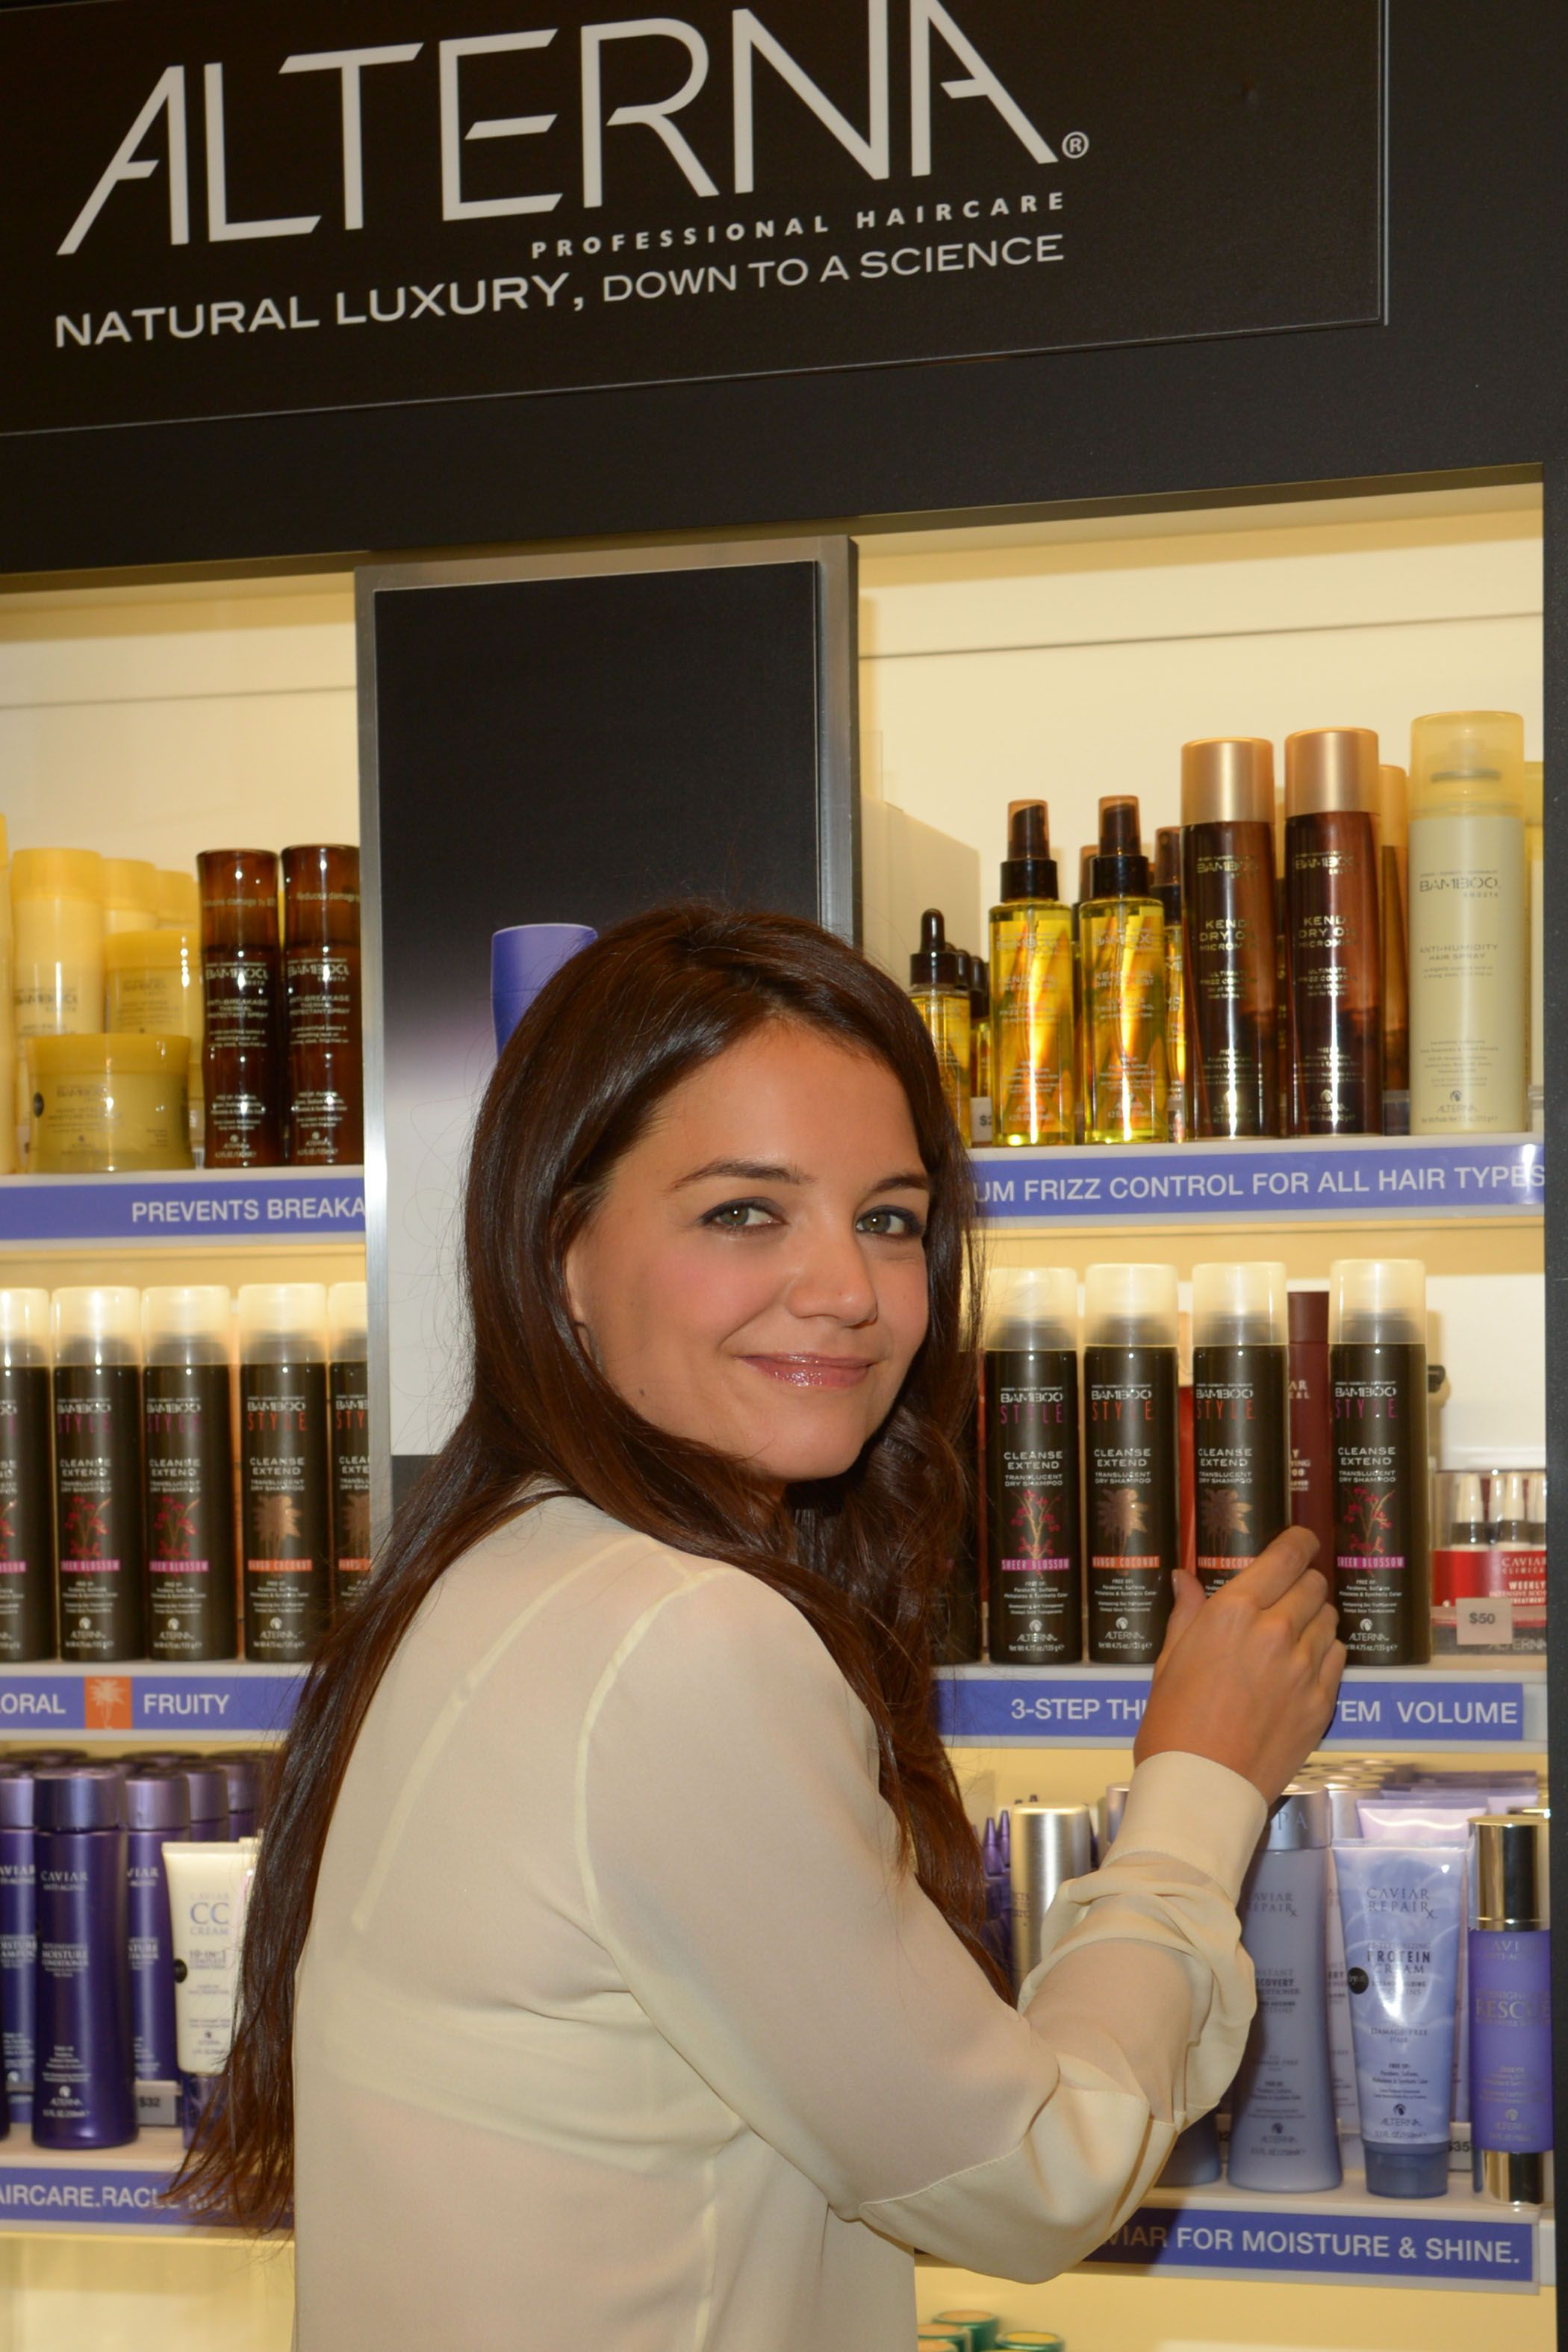 Today Katie Holmes, coowner of Alterna Haircare stopped